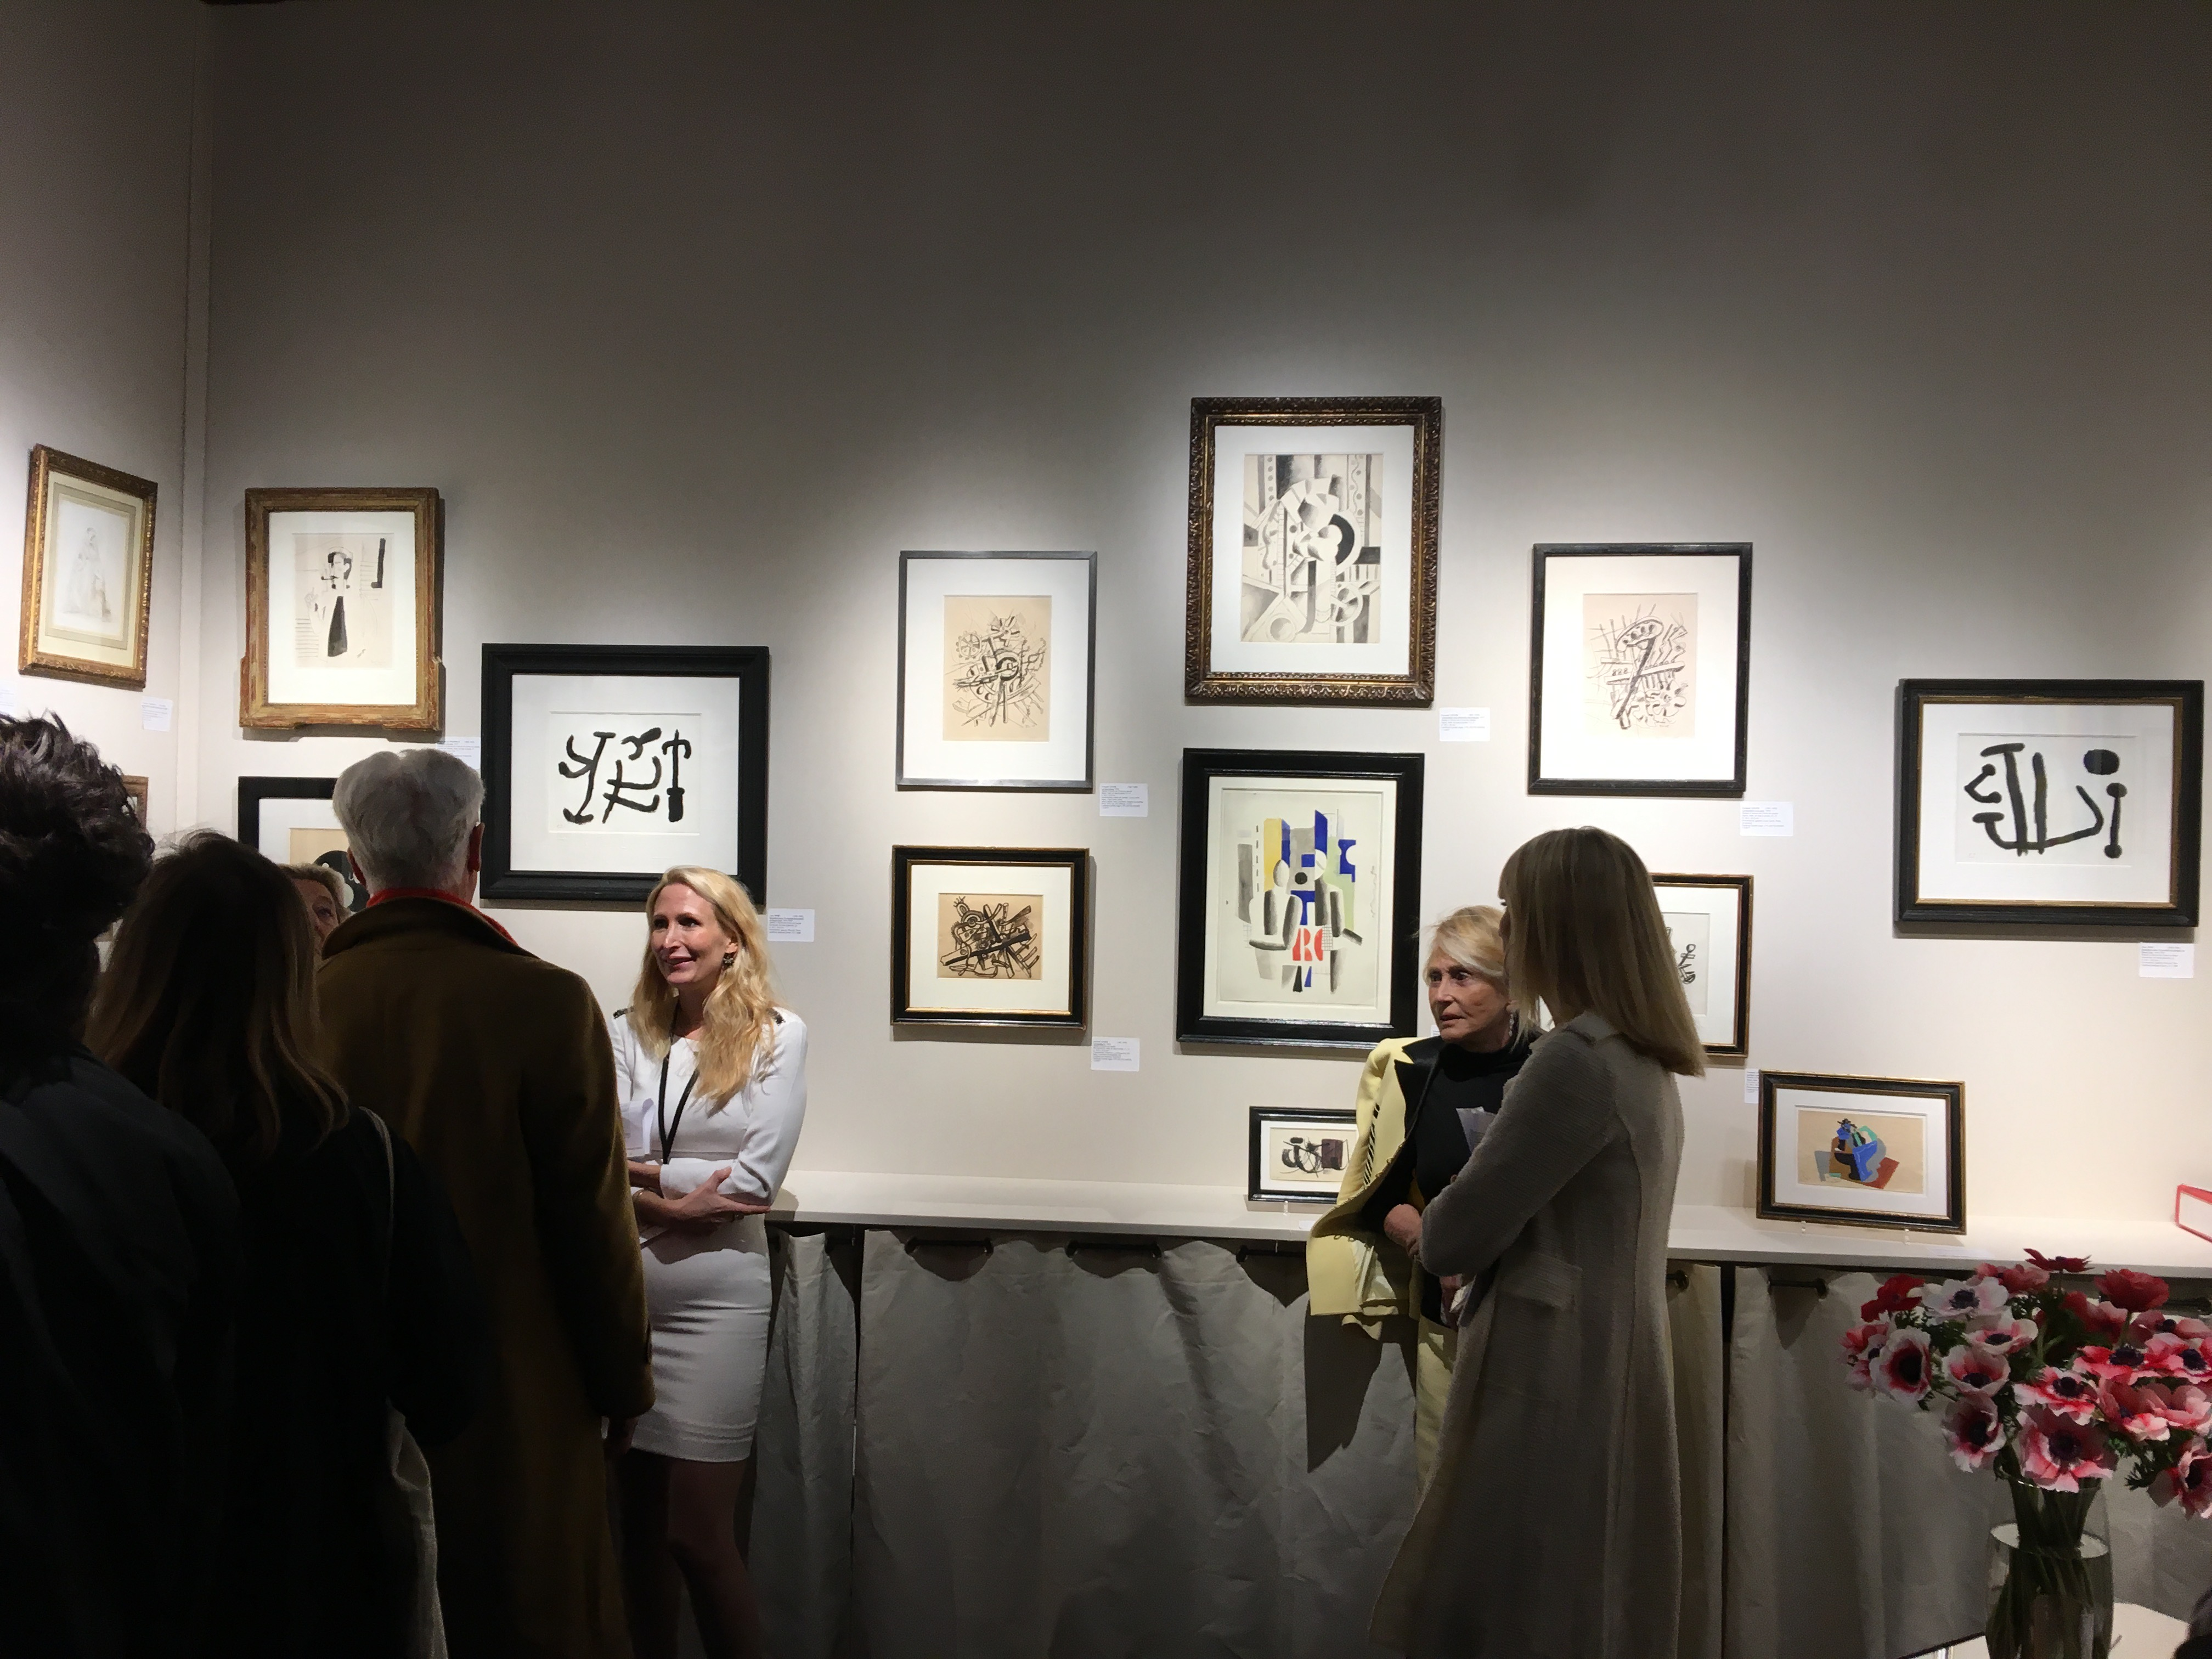 Salon Du Dessin Paris Salon Du Dessin Santa Fe Art Club